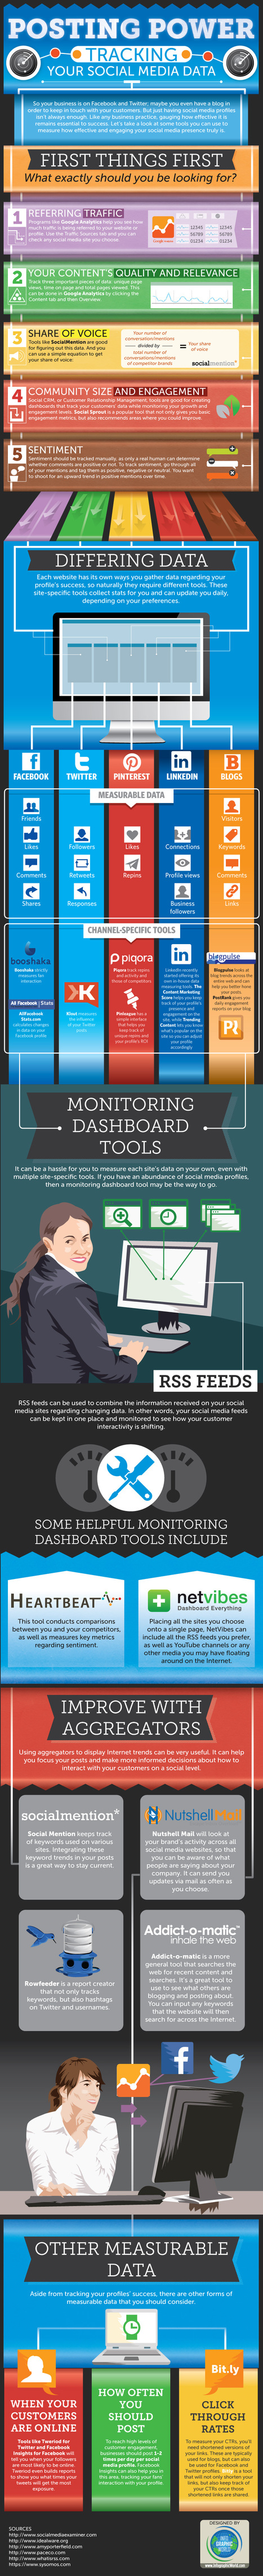 How To Track Your Social Media Data And Measure ROI [INFOGRAPHIC] - AllTwitter | Measuring the Networked Nonprofit | Scoop.it